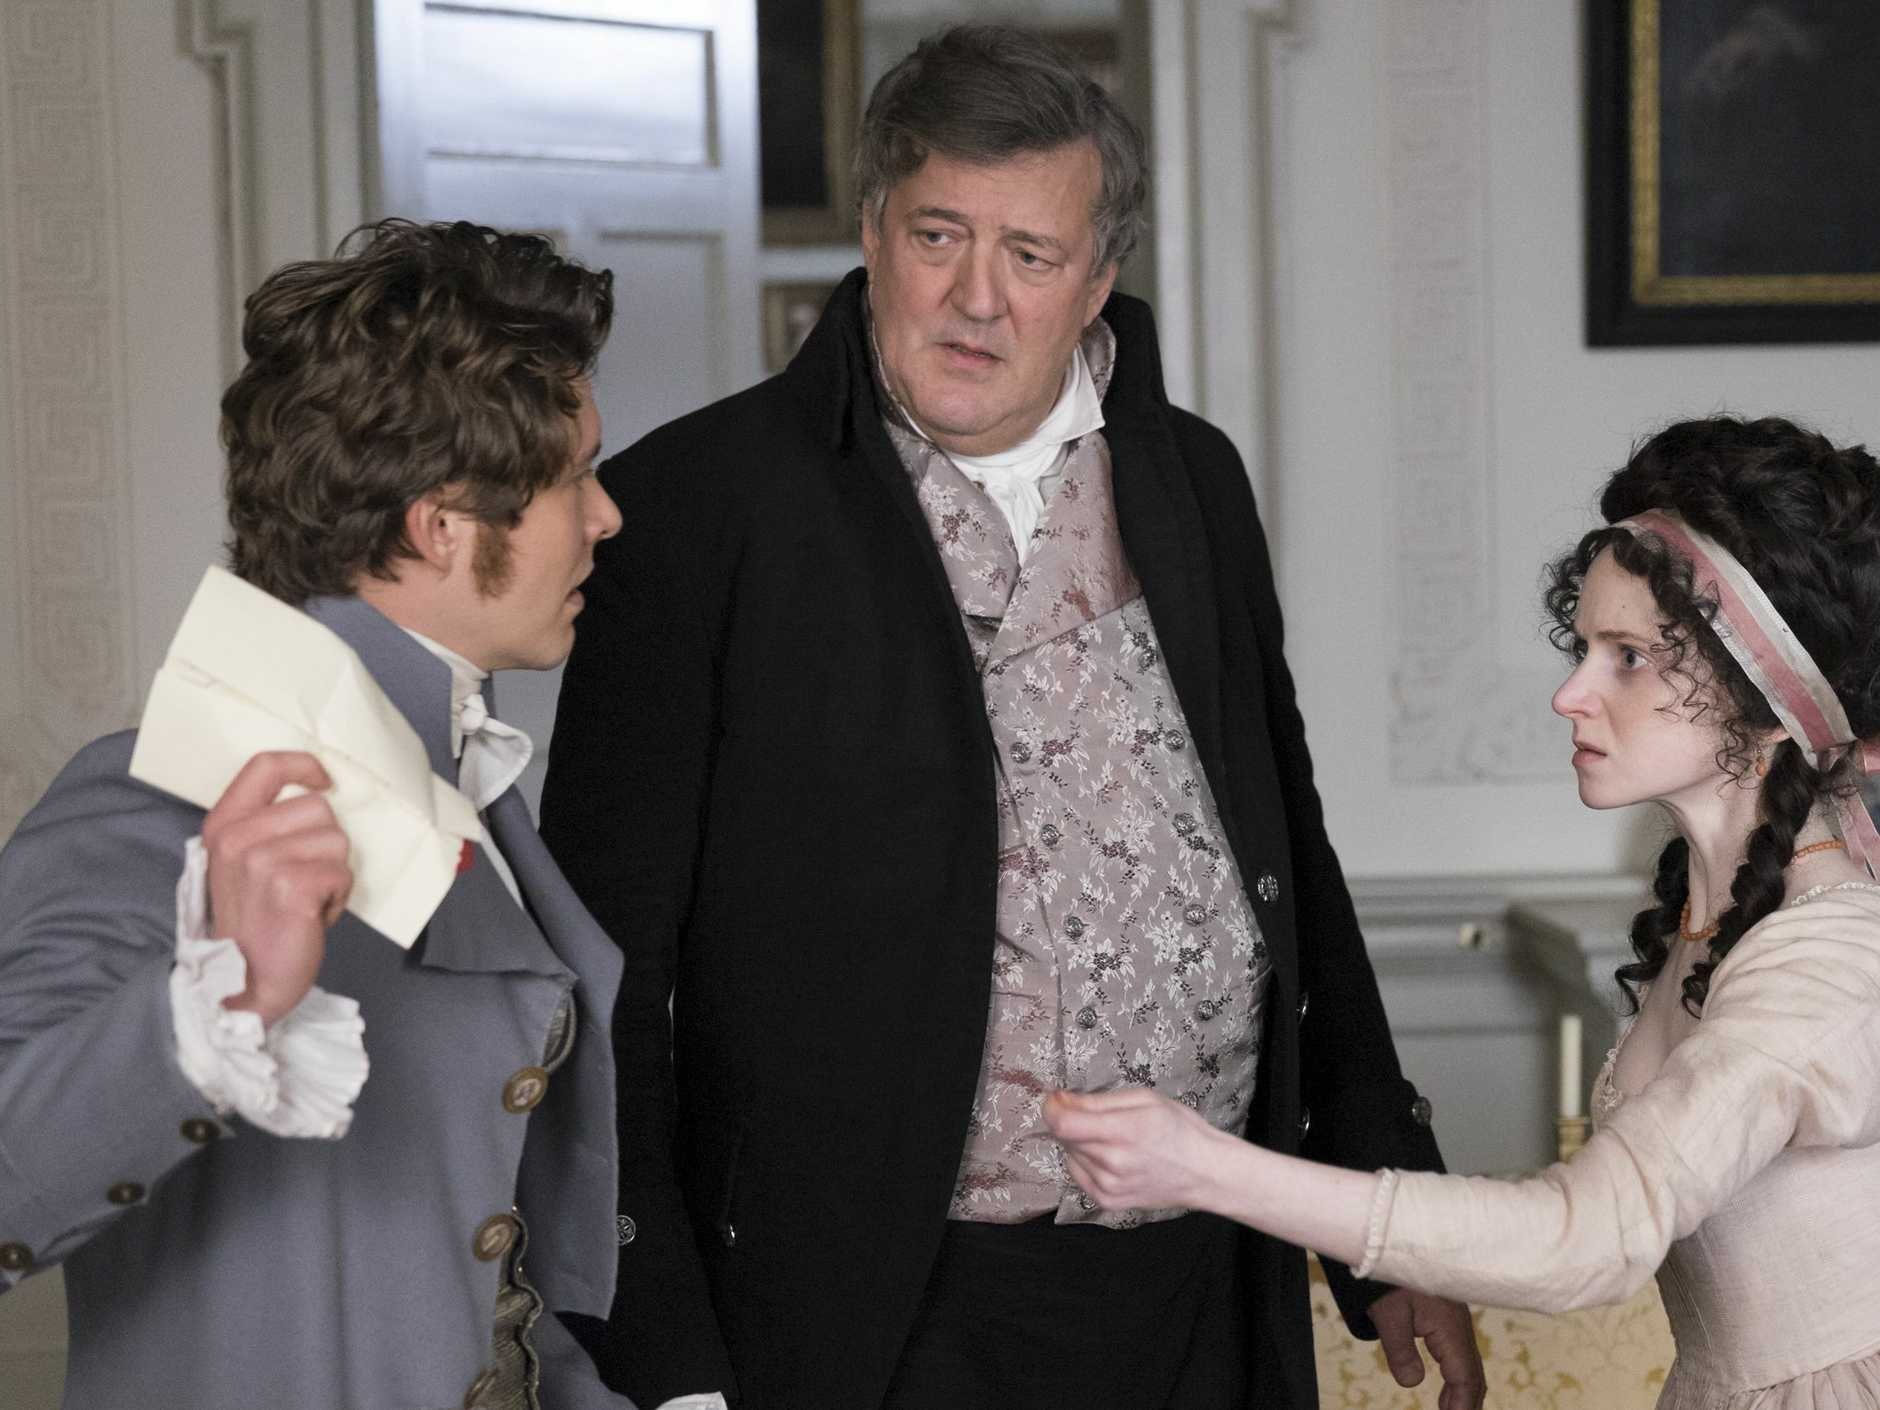 Xavier Samuel, Stephen Fry and Jenn Murray in a scene from the move Love & Friendship.